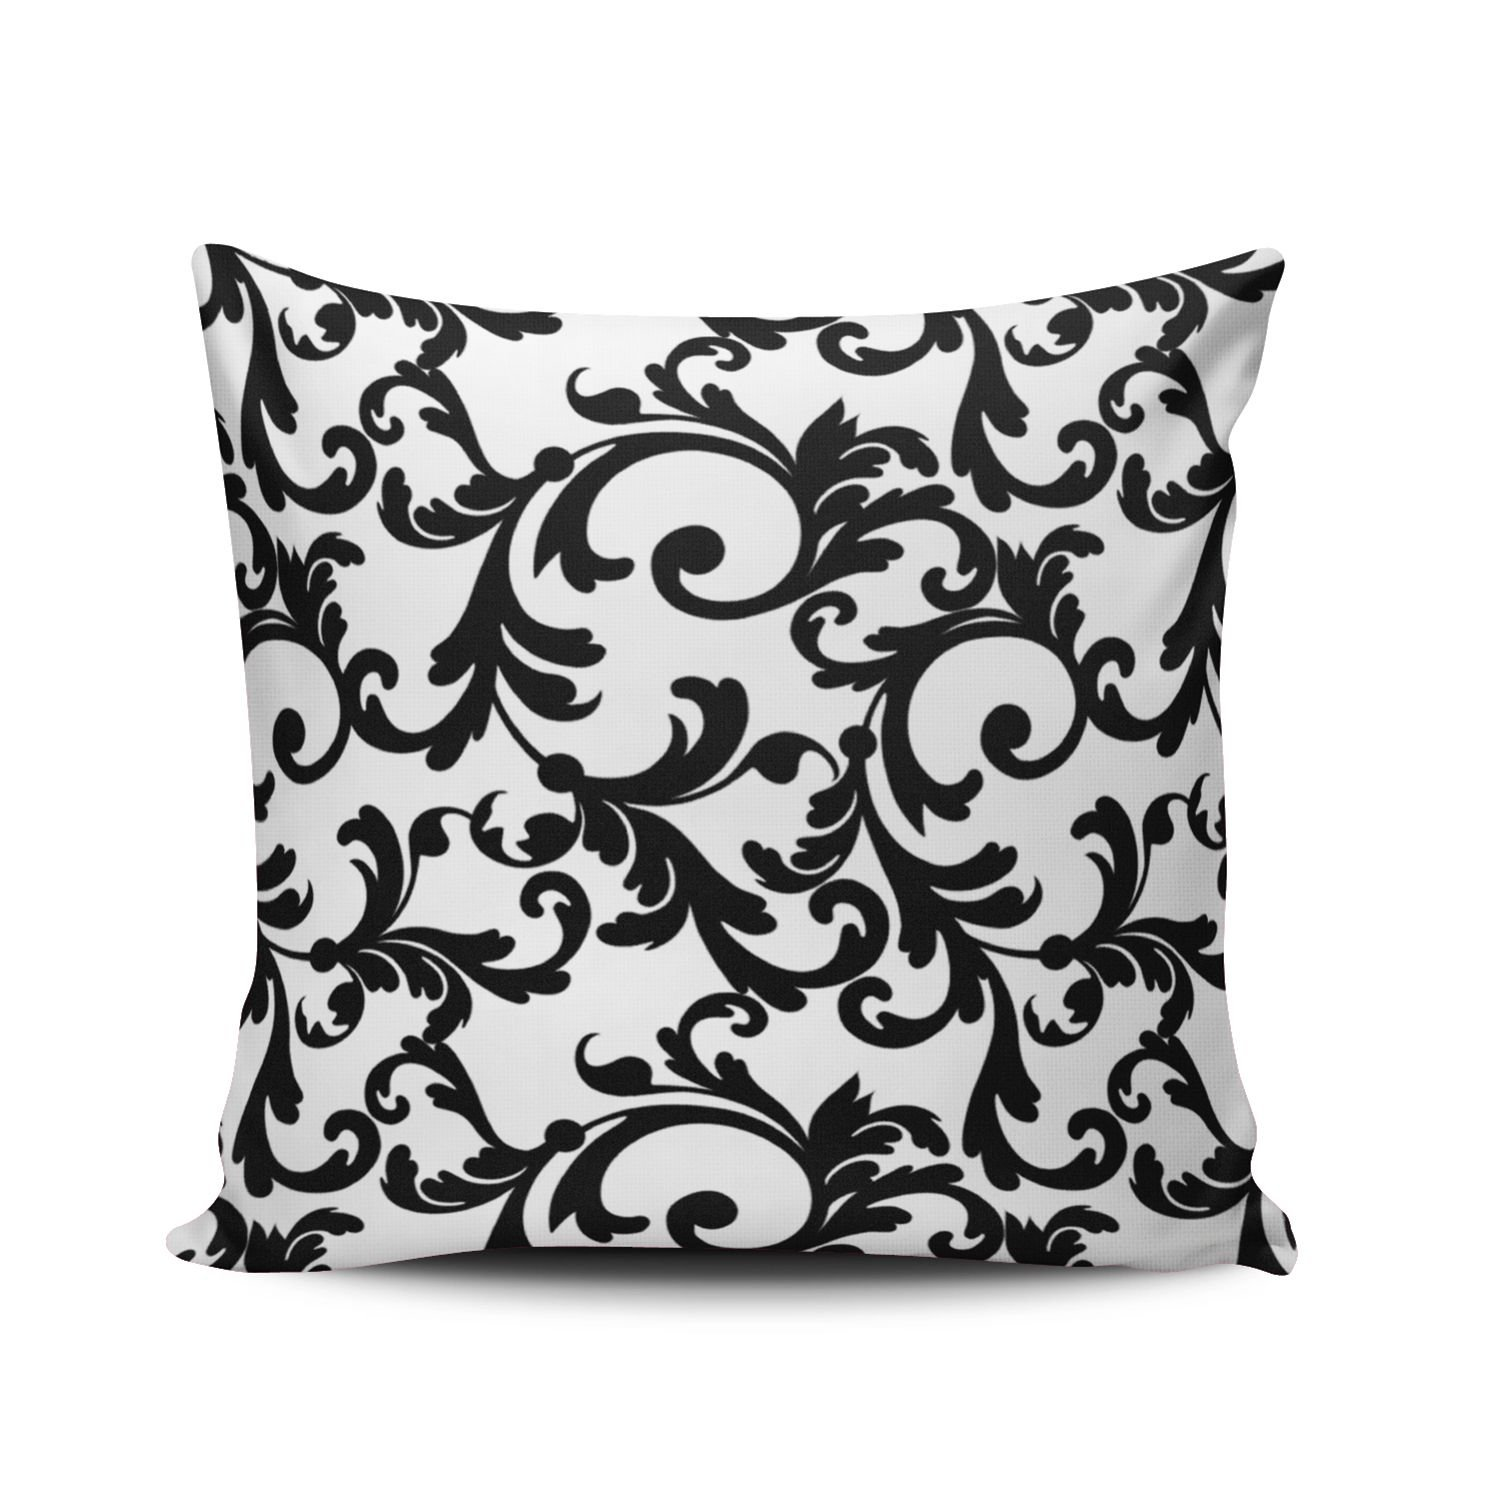 Salleing Custom Beauty Design White and Black Elegant Damask Decorative Pillowcase Pillowslip Throw Pillow Case Cover Zippered One Side Printed 12x16 Inches SALLEING Co. Ltd